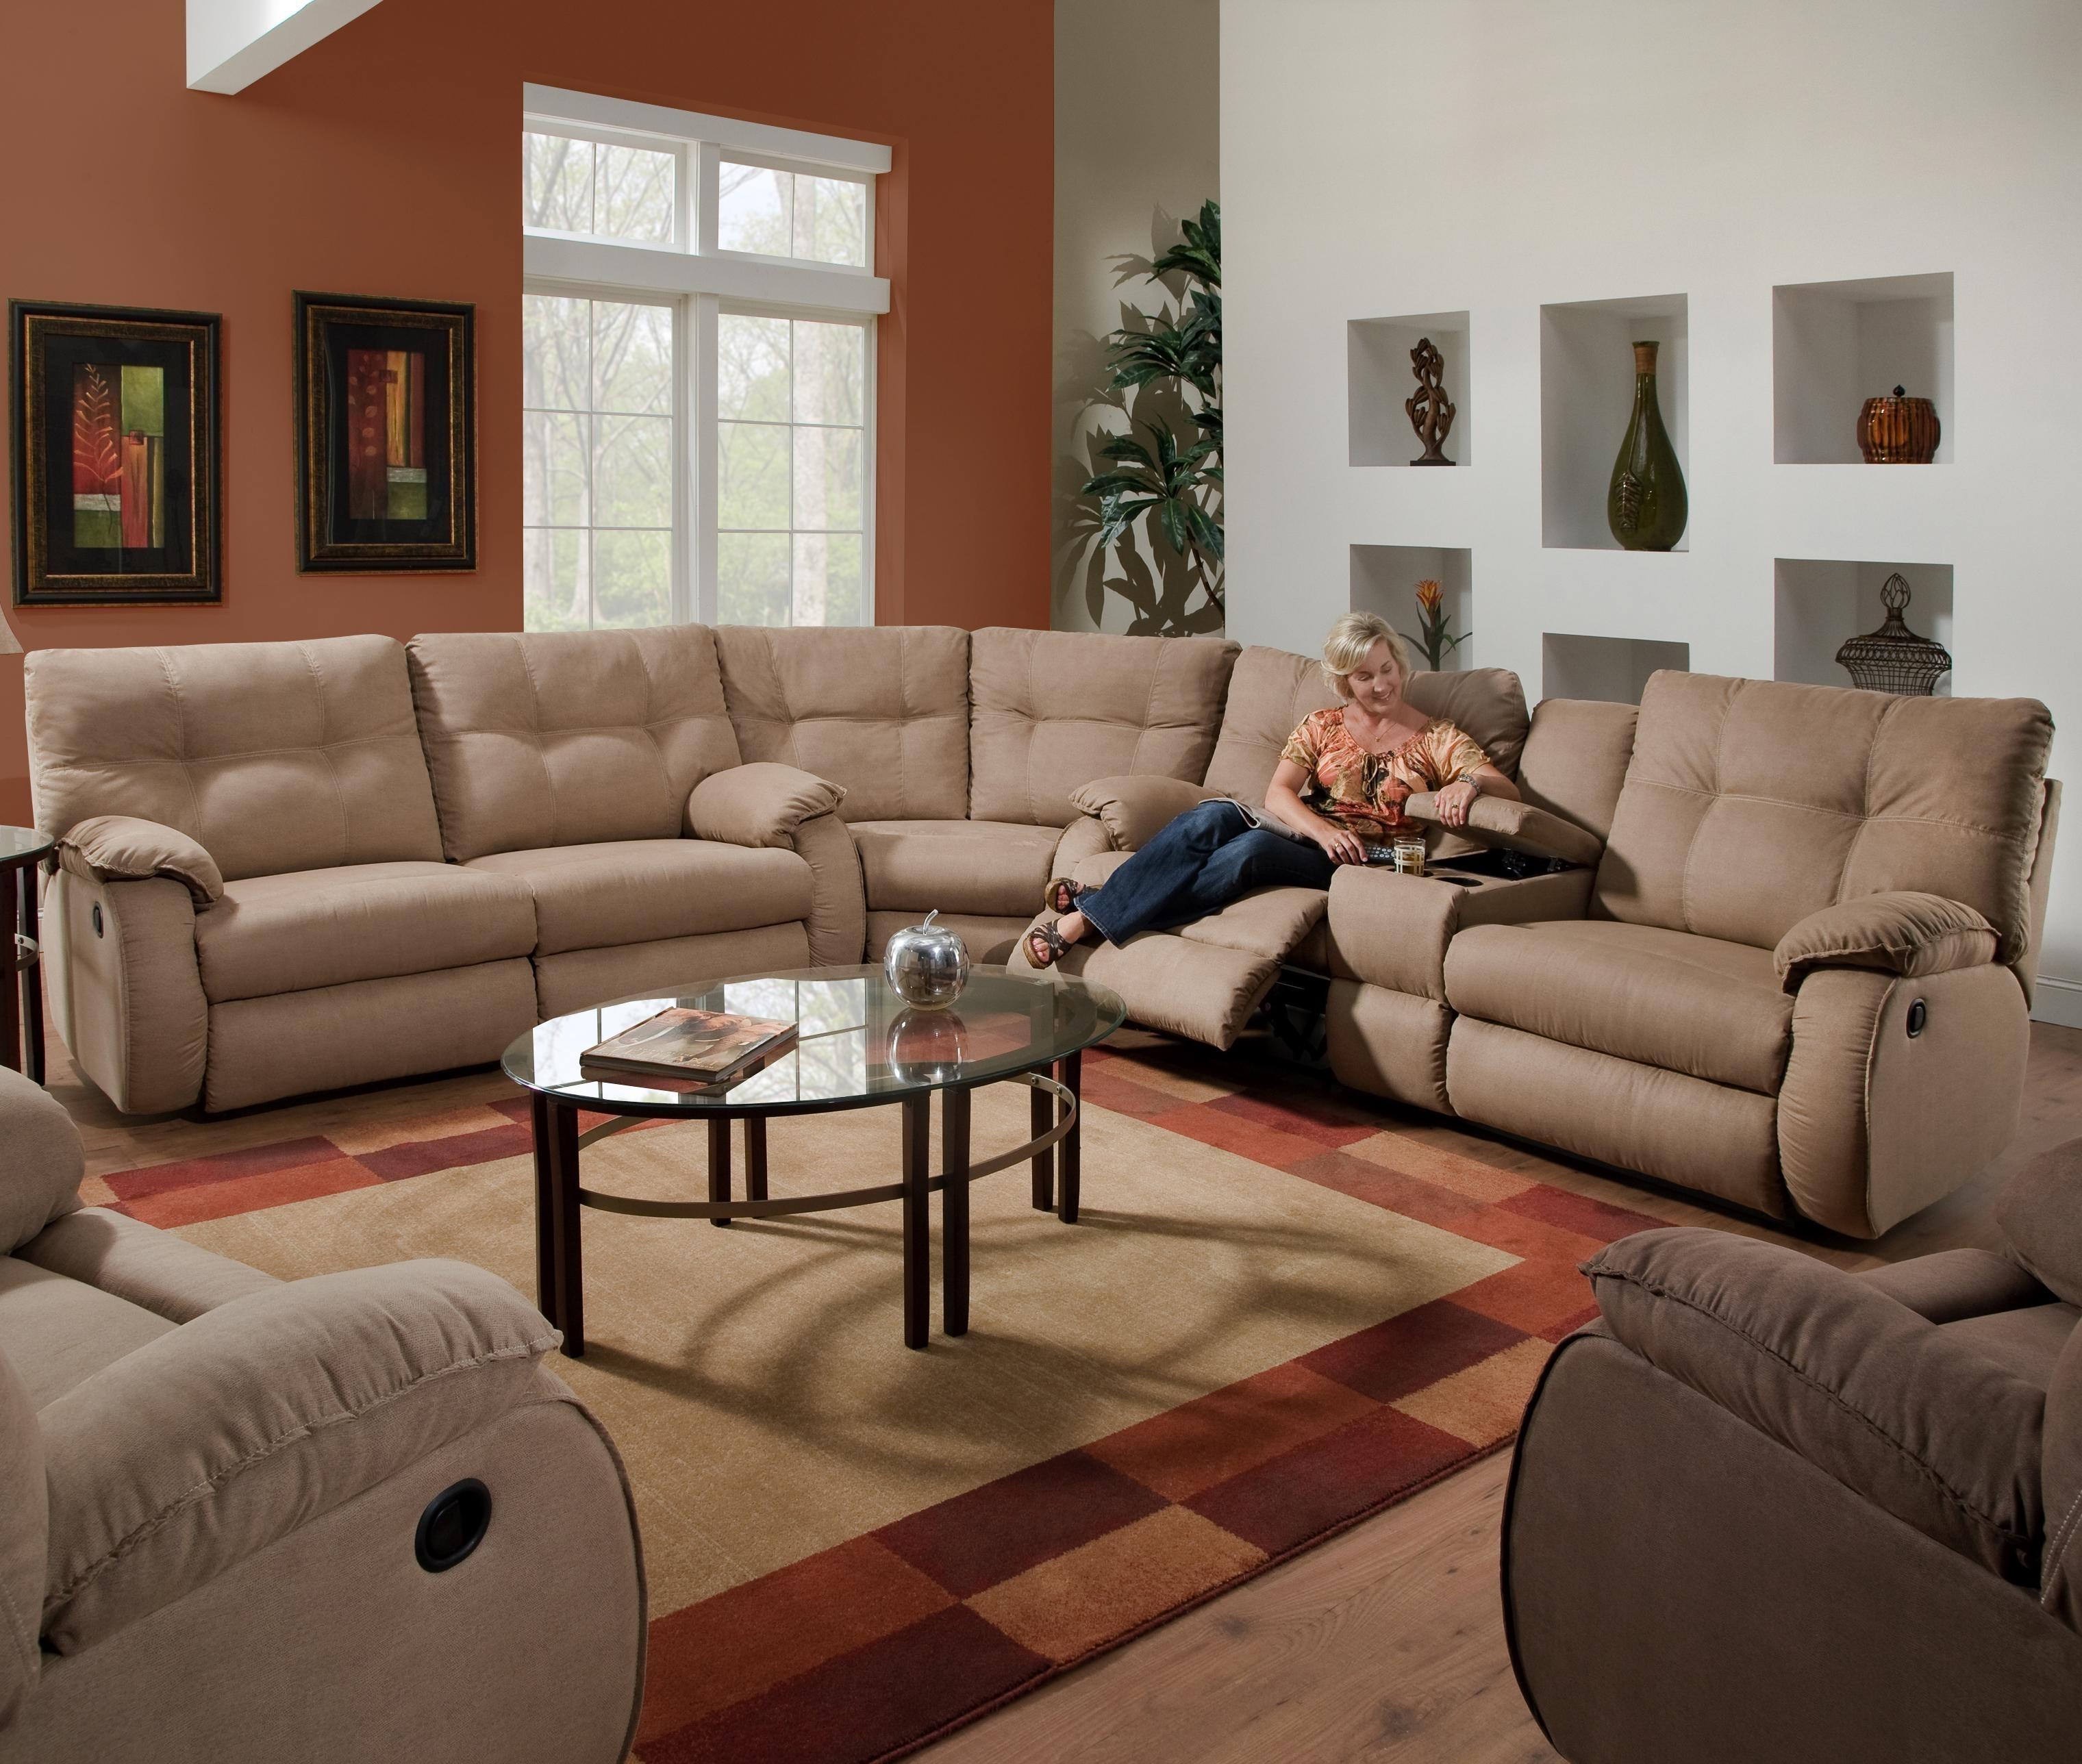 Reclining Sectional Sofas | Aifaresidency Throughout Sectional Sofas With Consoles (Image 7 of 10)